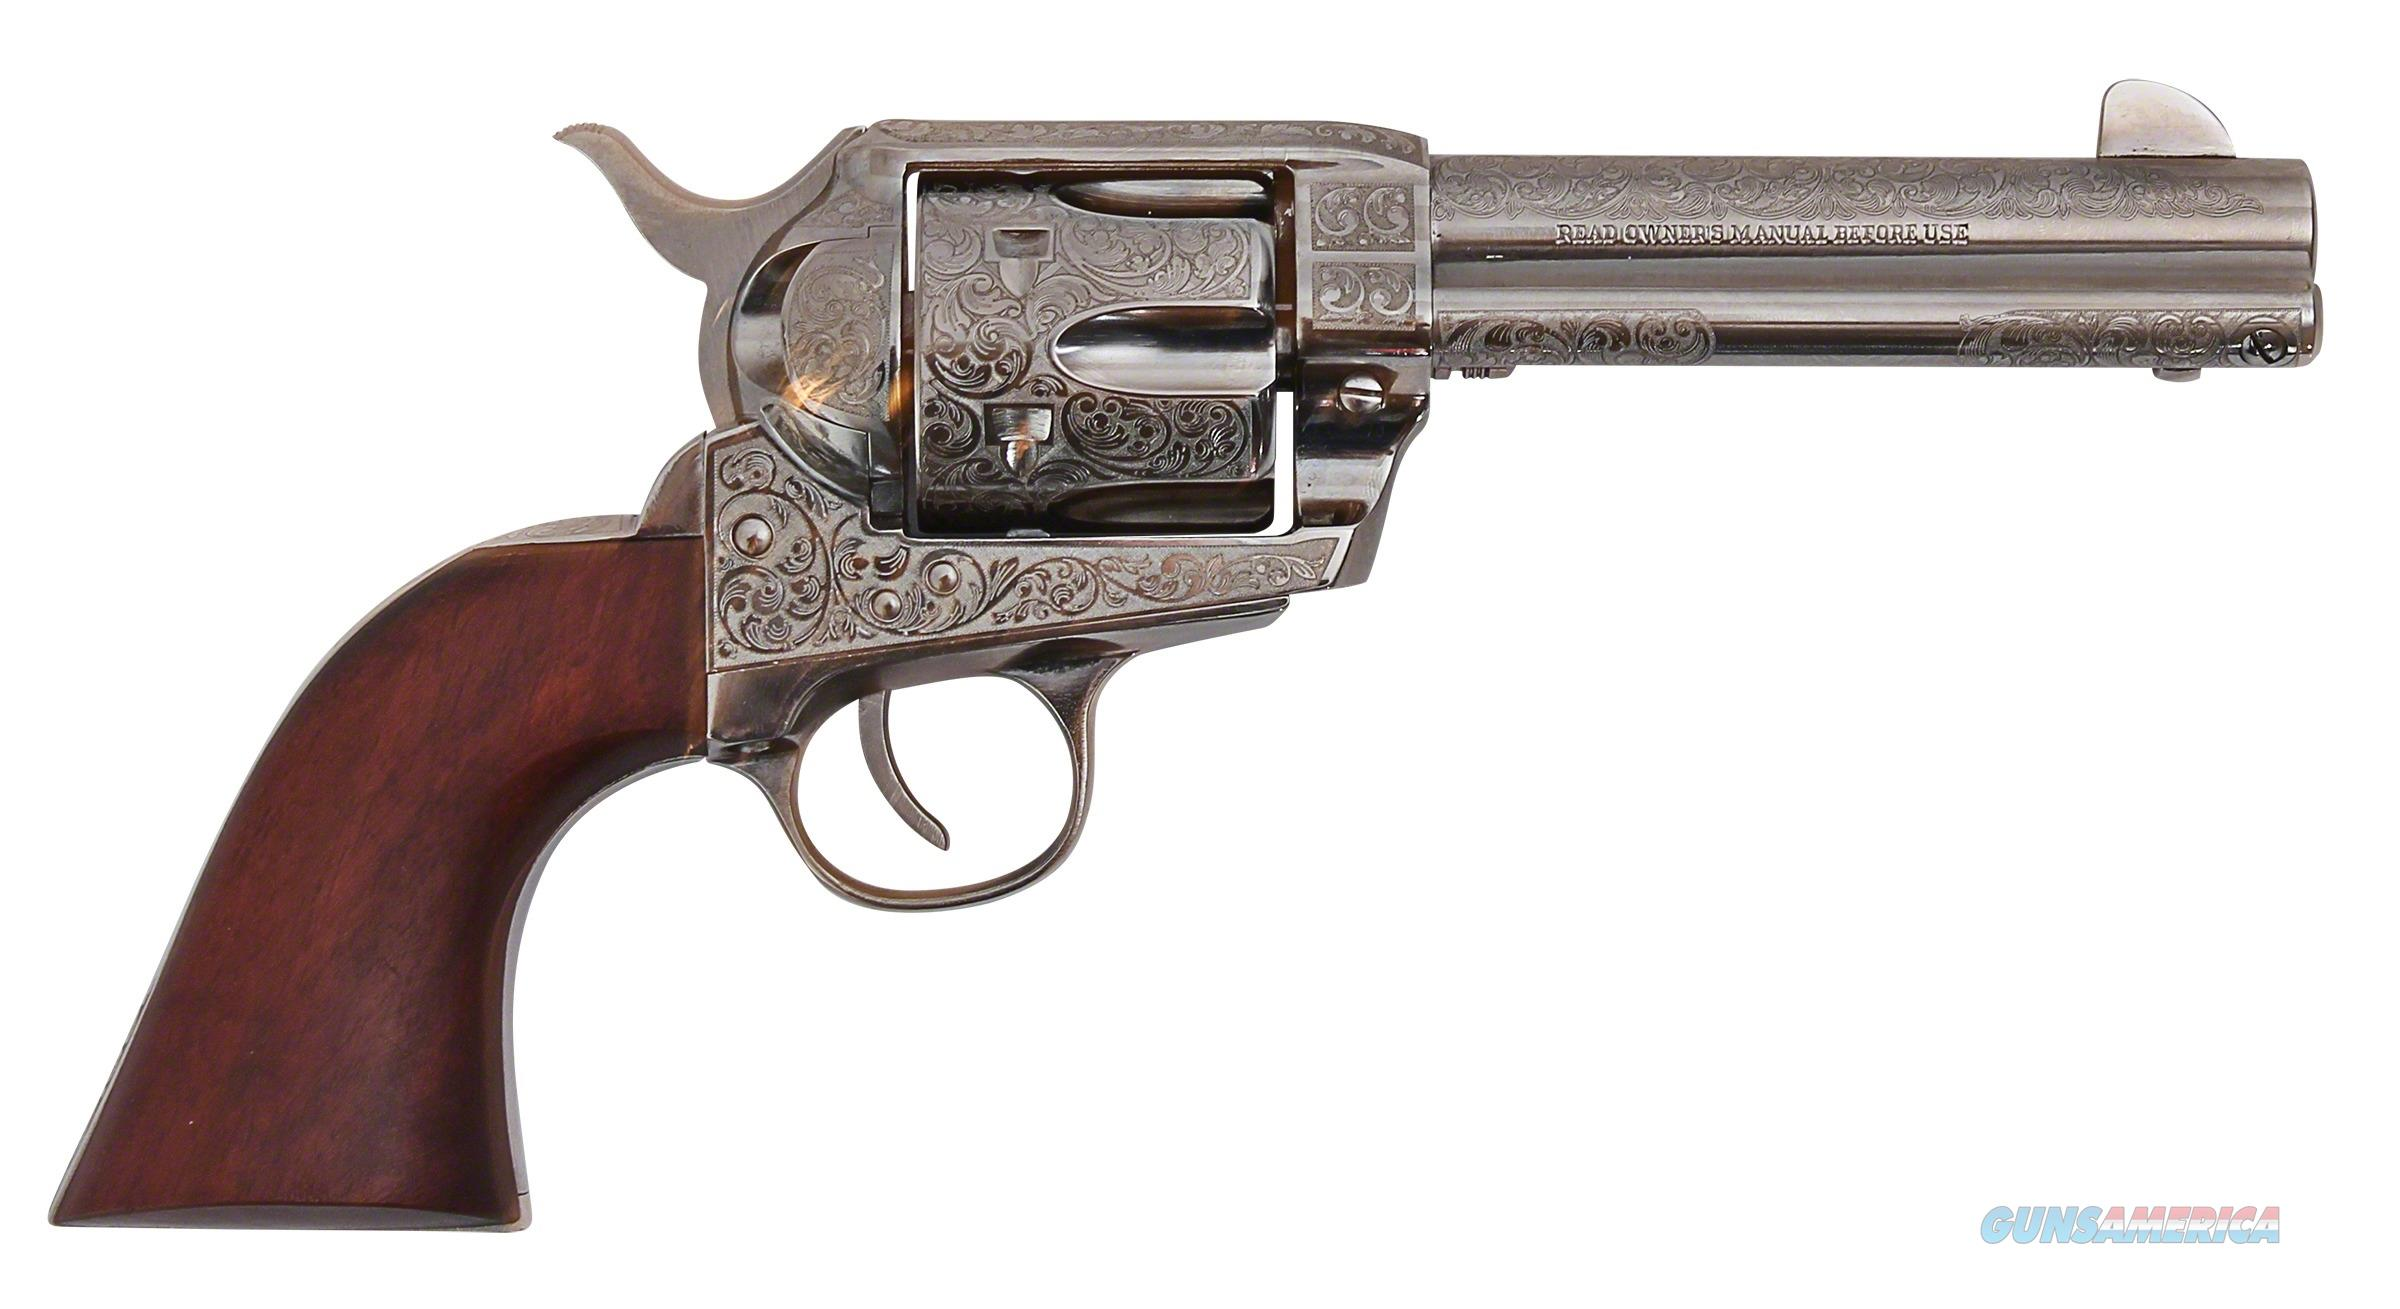 TRADITIONS FRONTIER SERIES 1873 SINGLE ACTION / WALNUT SAT73-141/LE  Guns > Pistols > Traditions Pistols